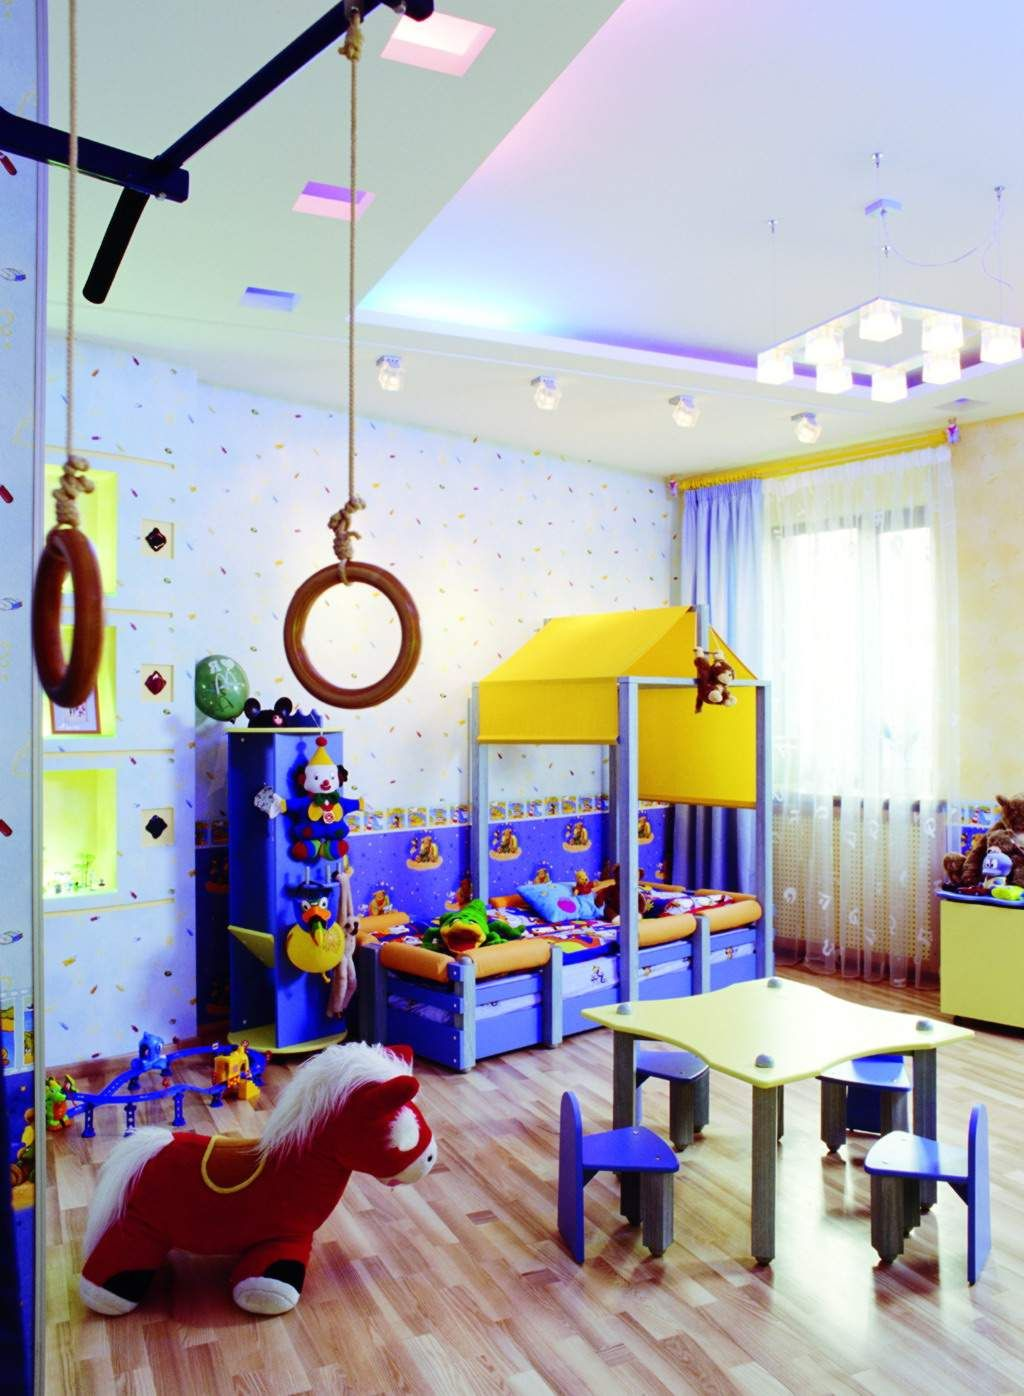 Kids bedroom ceiling decoration - Kids Room Kids Room Design Ideas With Colorful Kids Room Interior Design Ideas With Kids Room Sets Design Ideas With Ceiling Lamps For Kids Bedroom Design